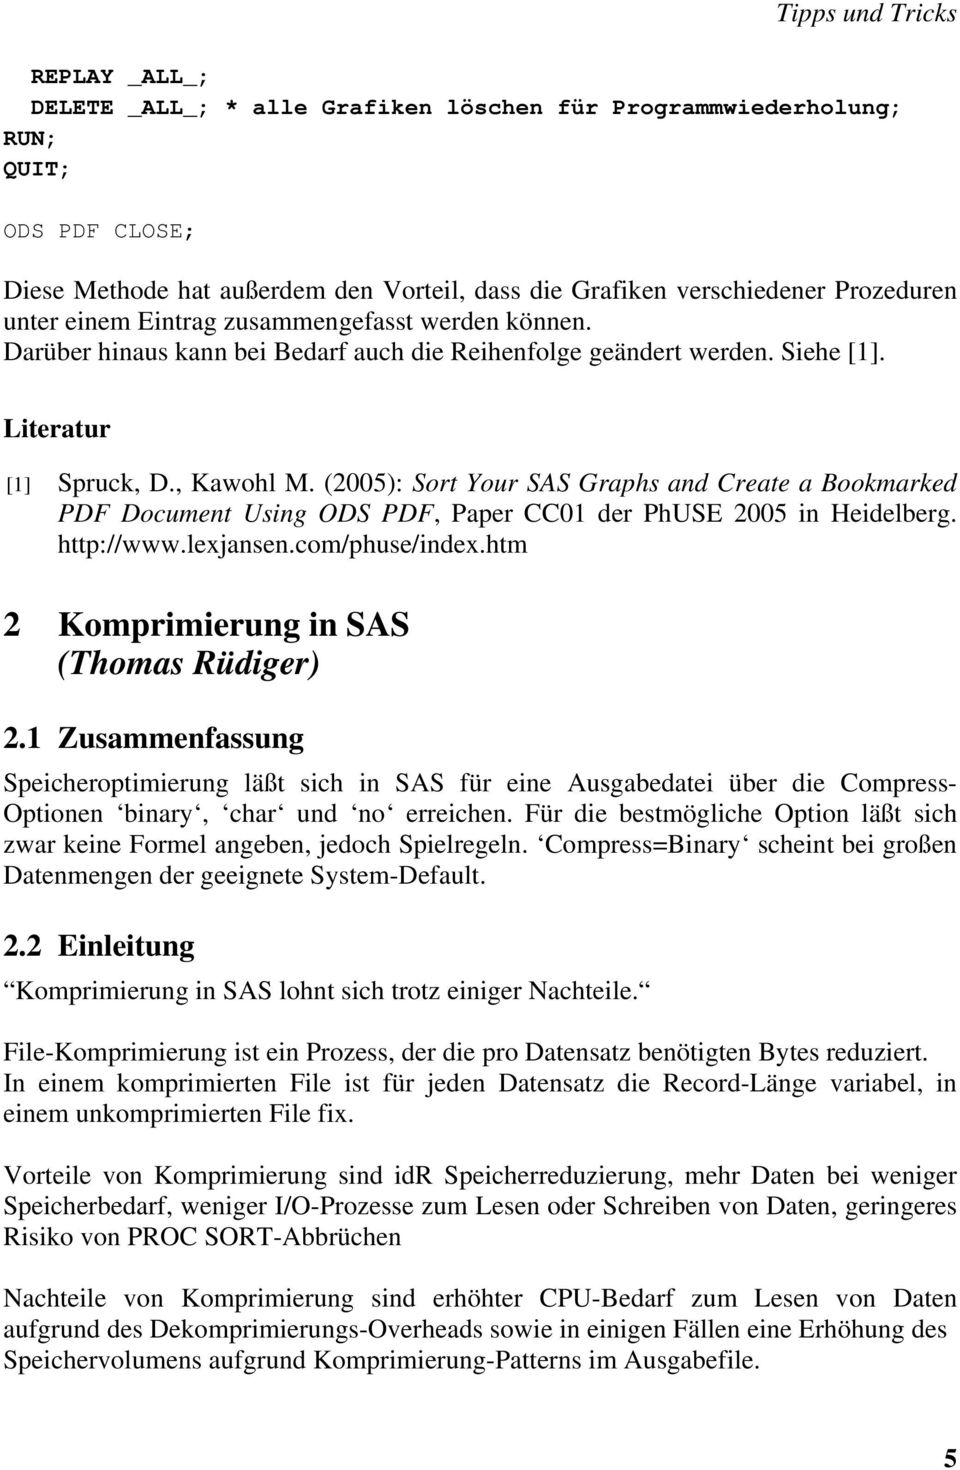 (2005): Sort Your SAS Graphs and Create a Bookmarked PDF Document Using ODS PDF, Paper CC01 der PhUSE 2005 in Heidelberg. http://www.lexjansen.com/phuse/index.